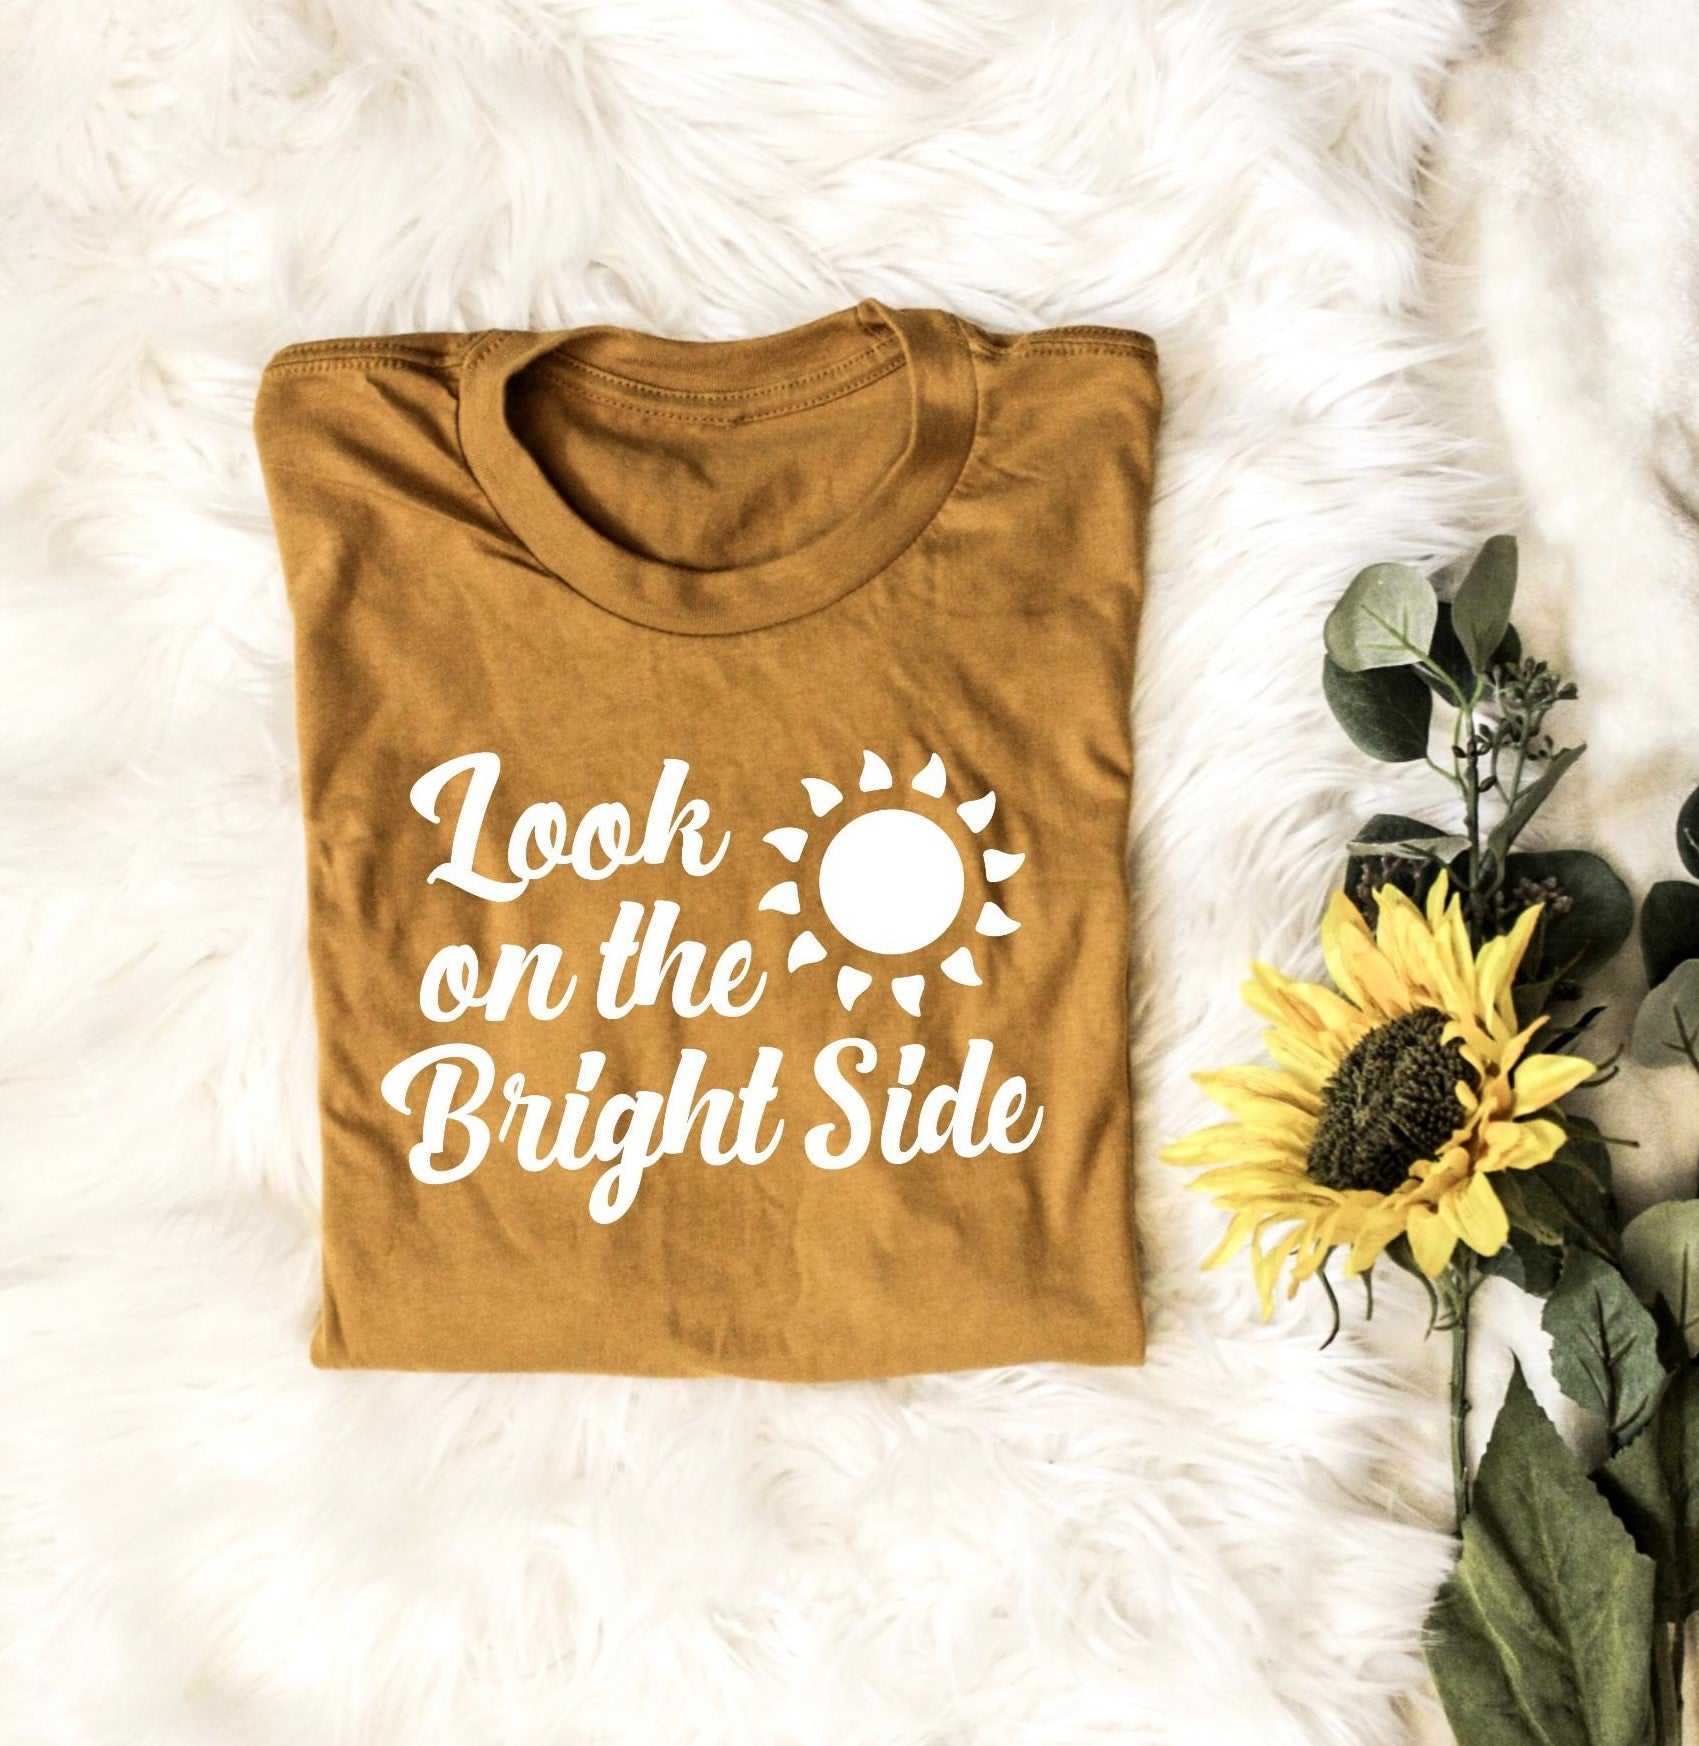 Look on the Bright Side - Unisex Fit - More Colors